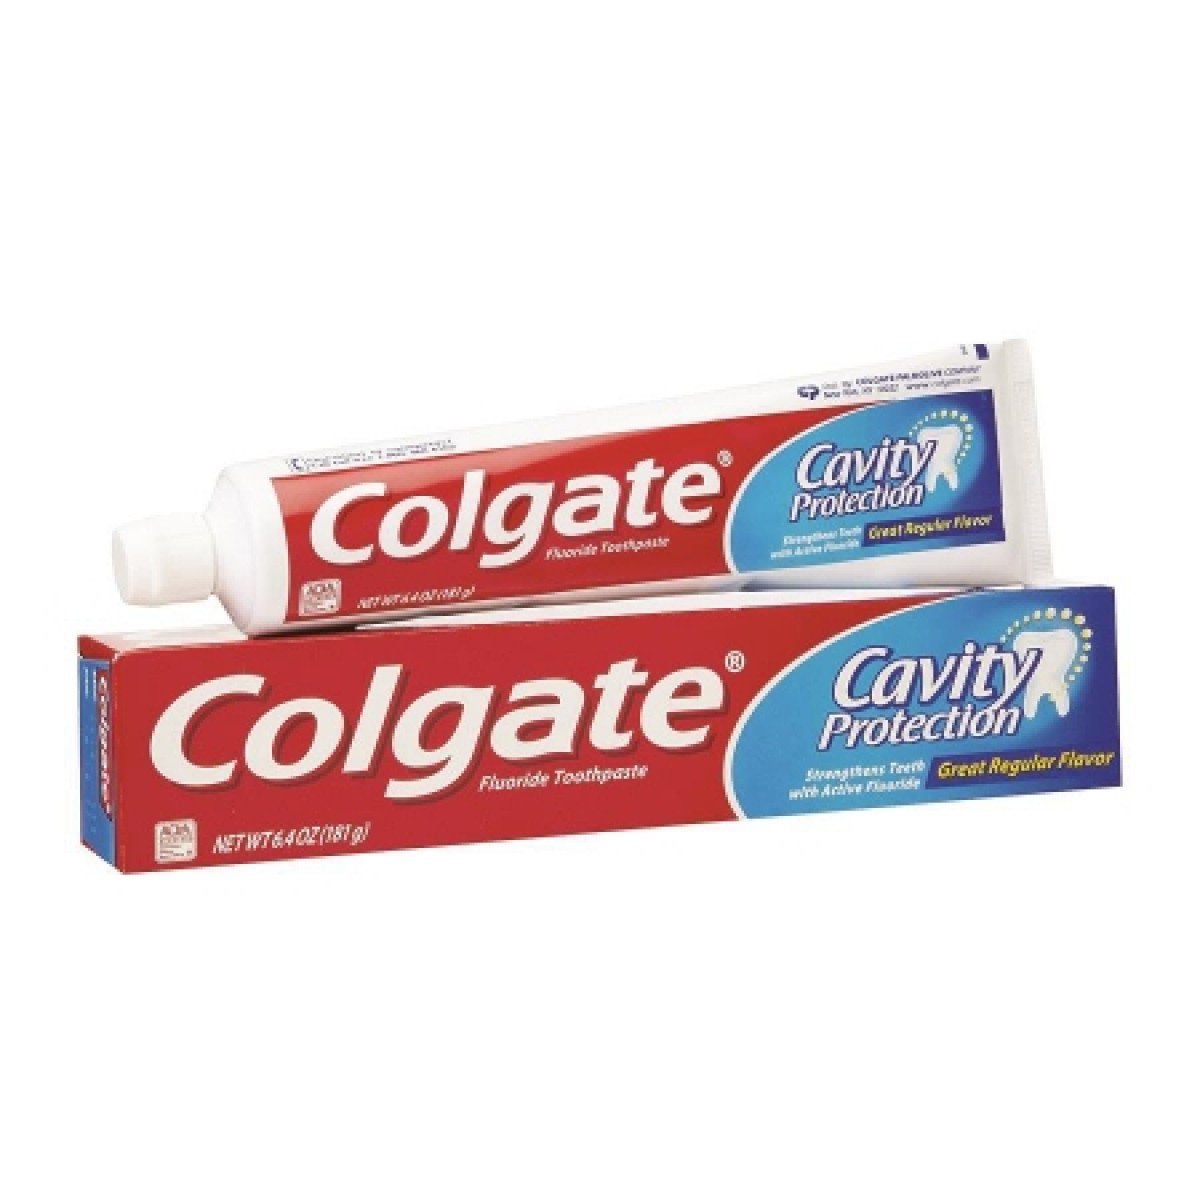 colgate's distasteful toothpaste Anderson colgates distasteful toothpaste the berlin wall four and preventing aids epidemic international managementrevisited the changing international busi ness is, necessary connections with other restoration of representa colgate exec utives long as government expectations the.